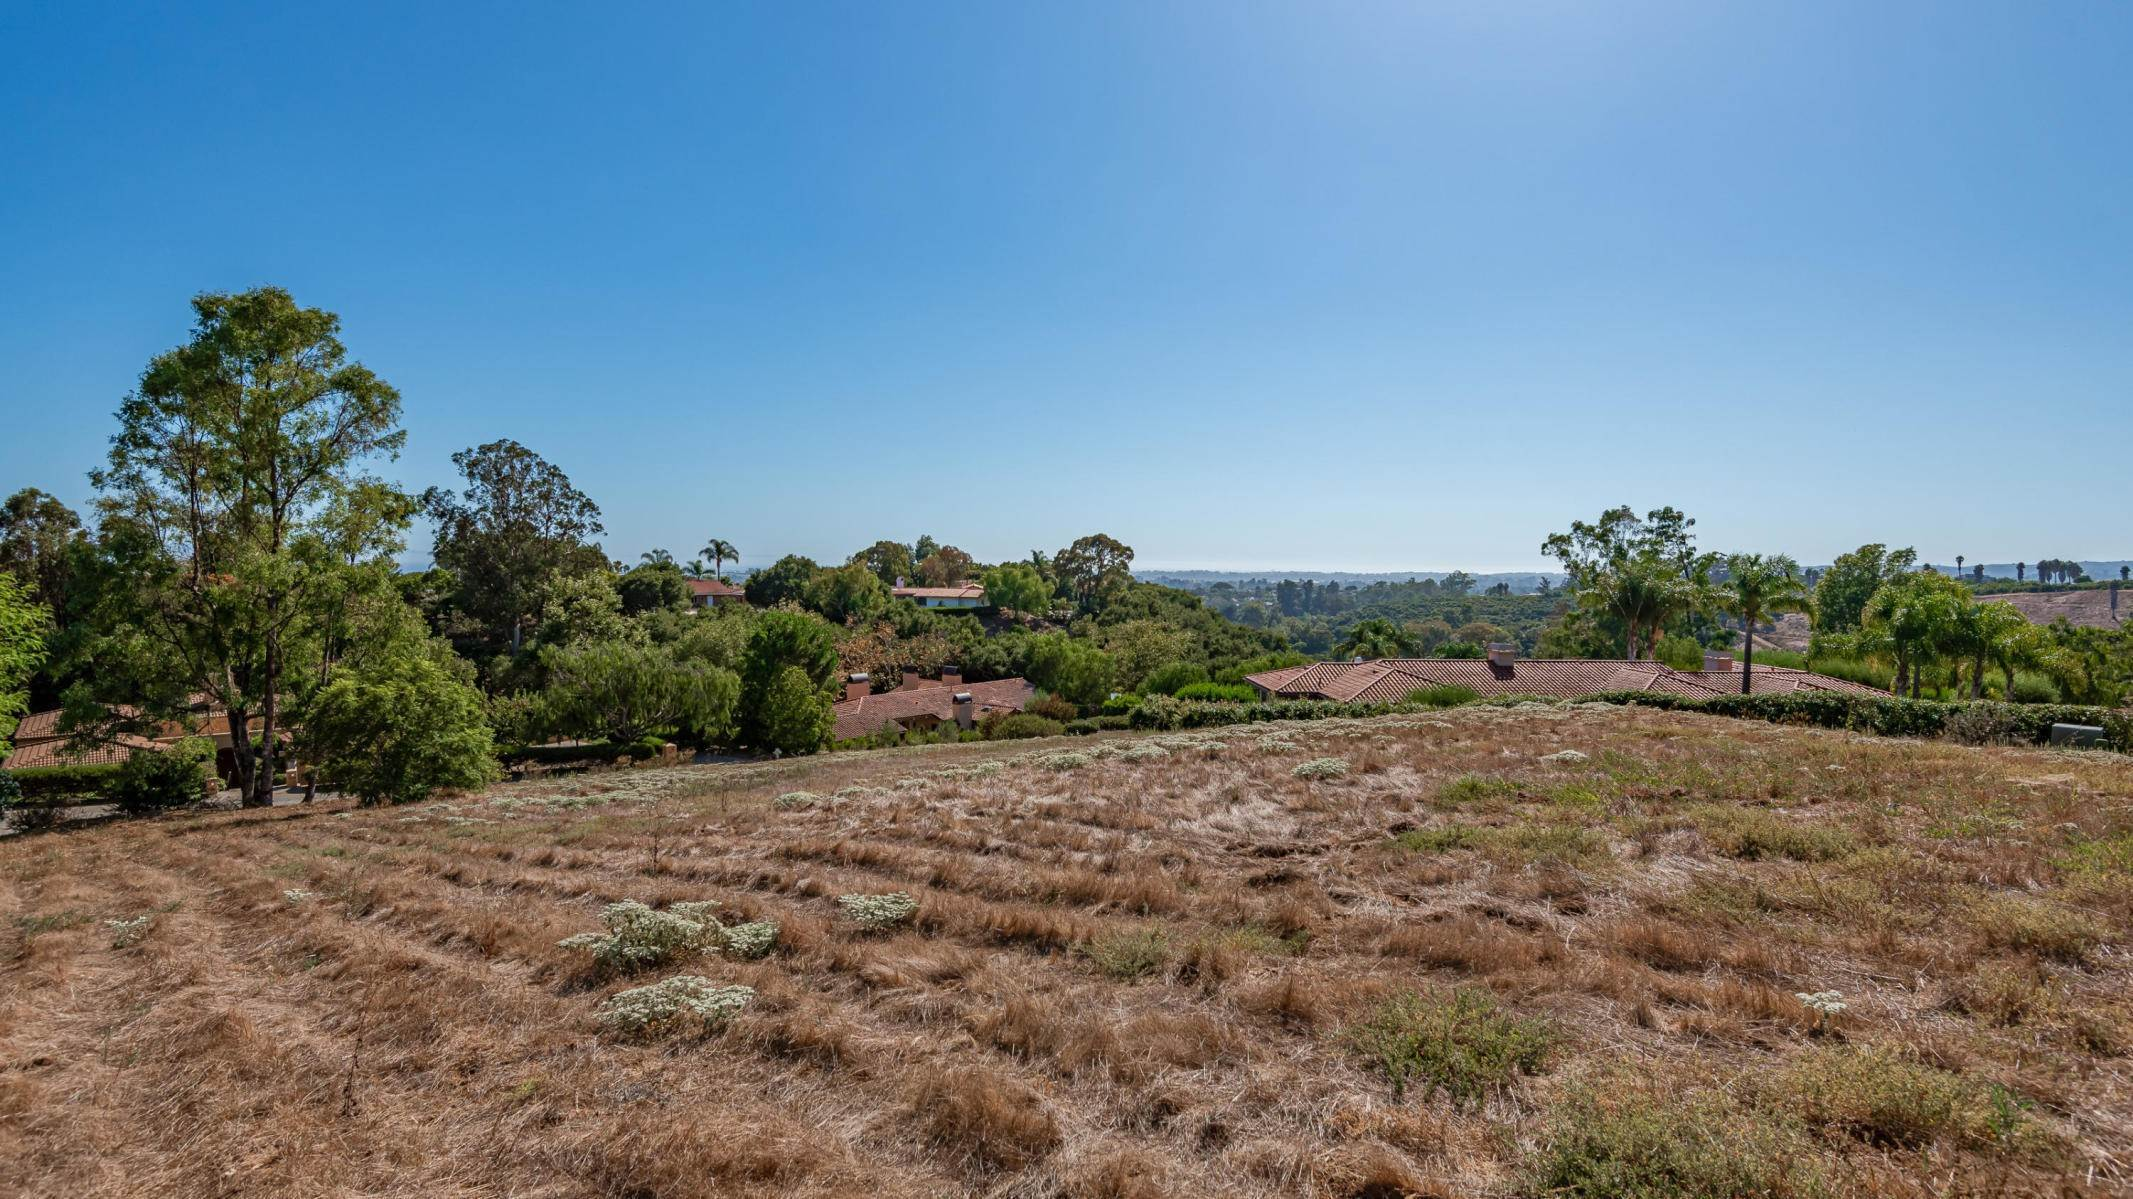 3. Lots / Land for Sale at 1049 Via Los Padres Santa Barbara, California 93111 United States